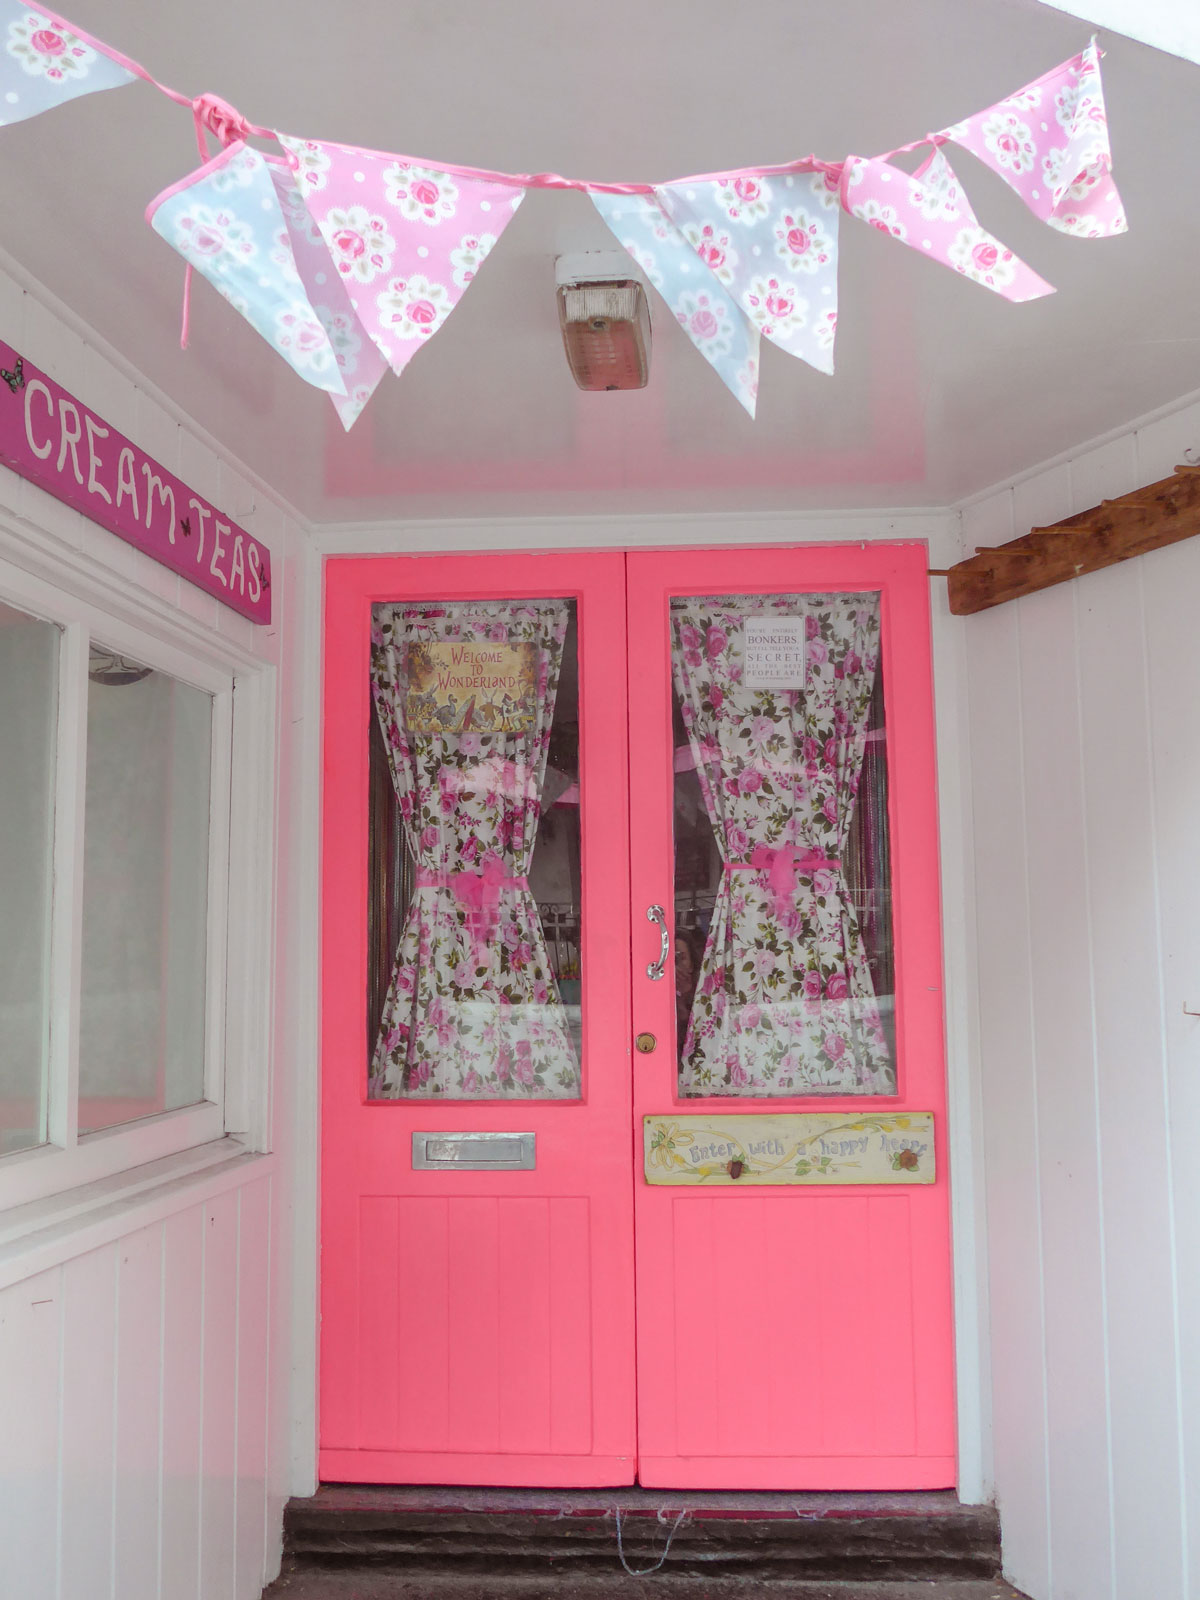 Polperro-Cornwall---Cornish-Cream-Tea---Pink-doors